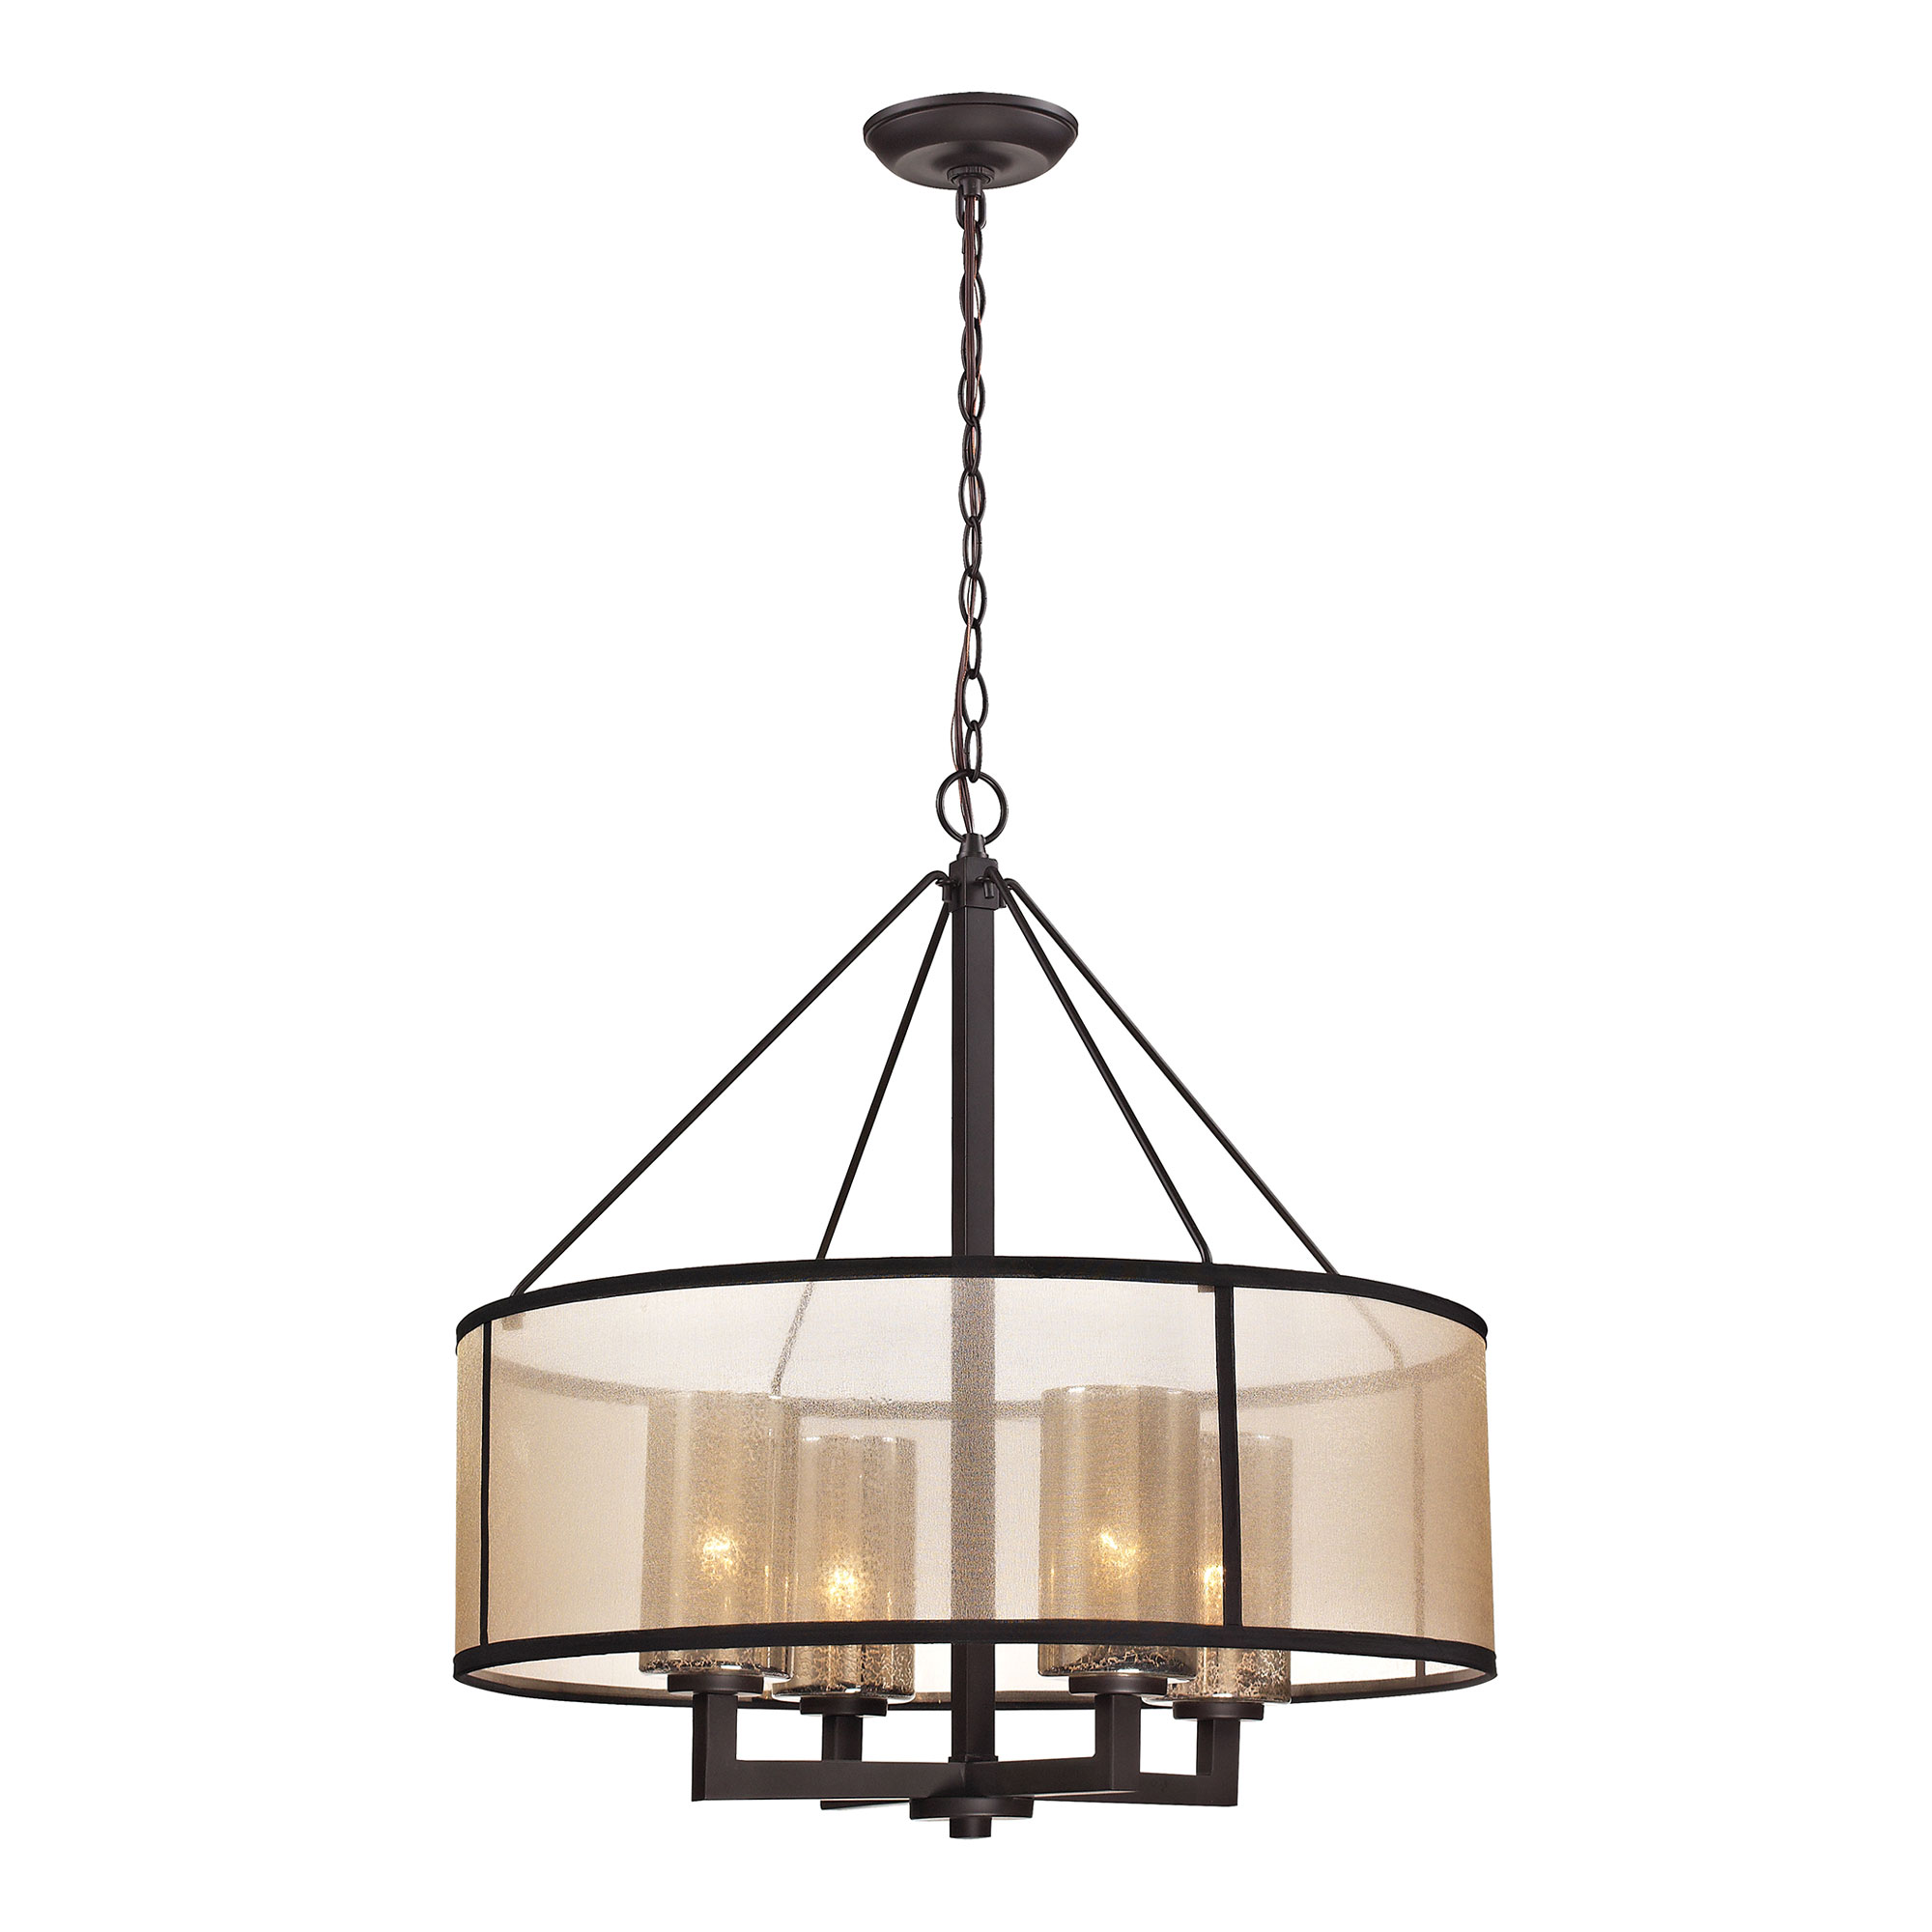 diffusion chandelier by elk lighting